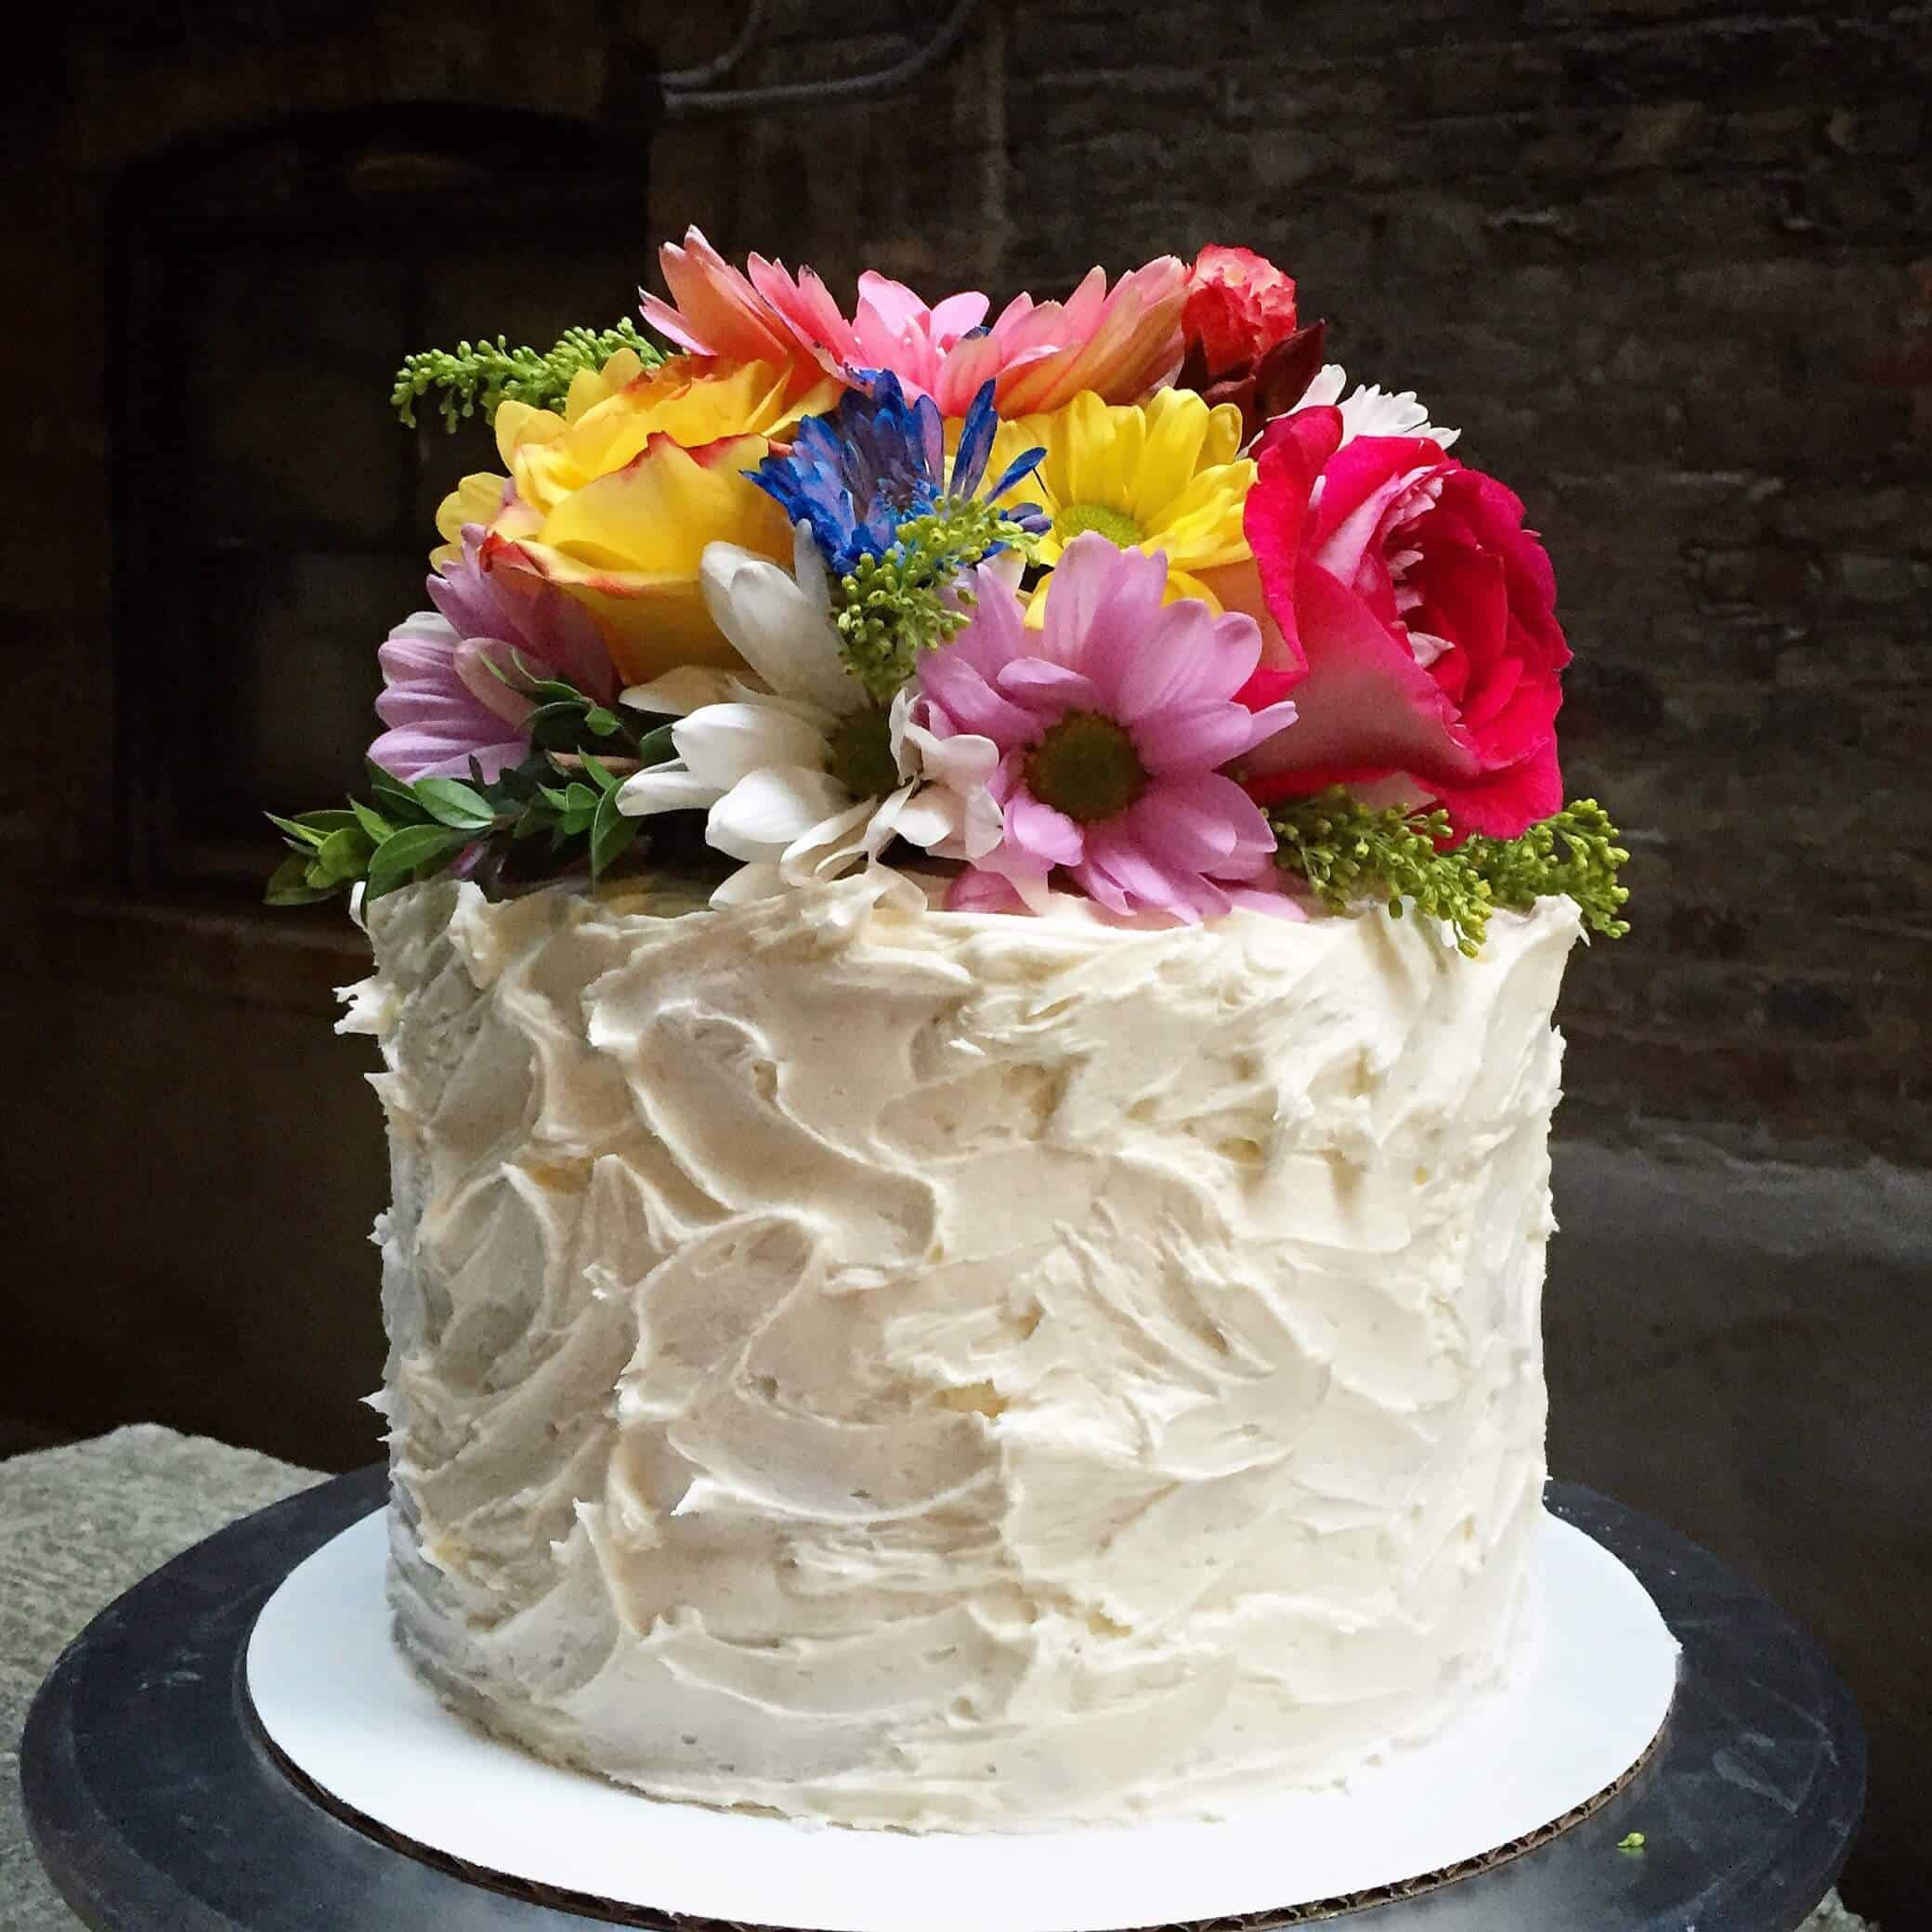 How To Floral Vanilla Birthday Cake